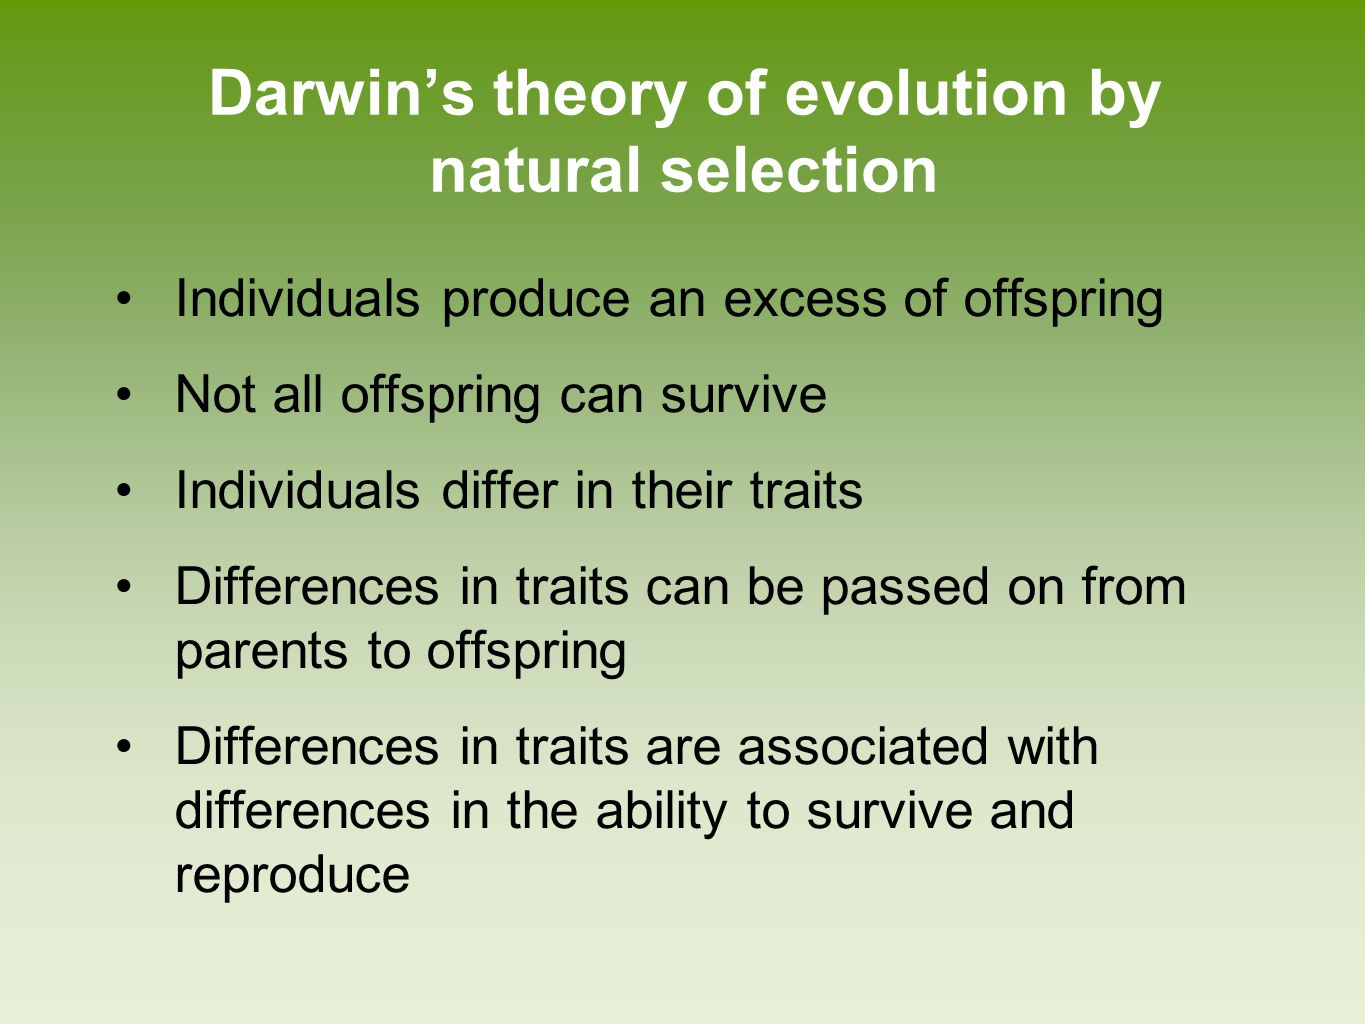 Darwin's theory of evolution by natural selection